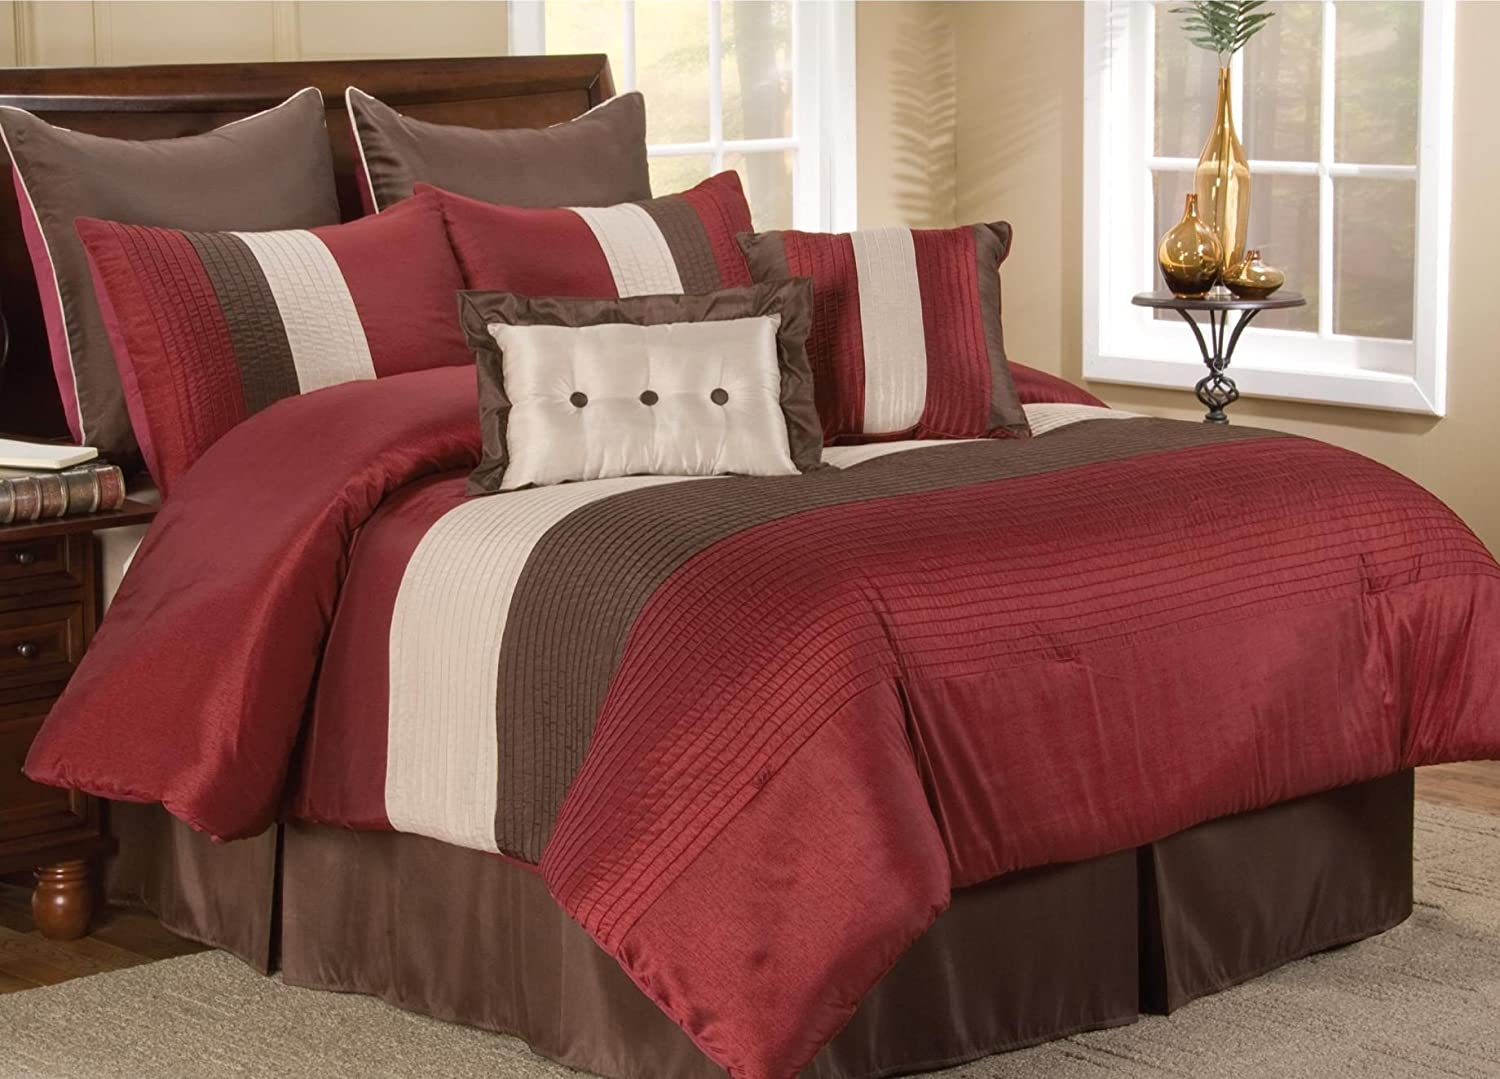 Brown and red bedding - Amazon Com 8 Pc Modern Red Beige Brown Bed In A Bag Comforter Set Queen Size Bedding 90 X90 Comforter By Plush C Collection Home Kitchen